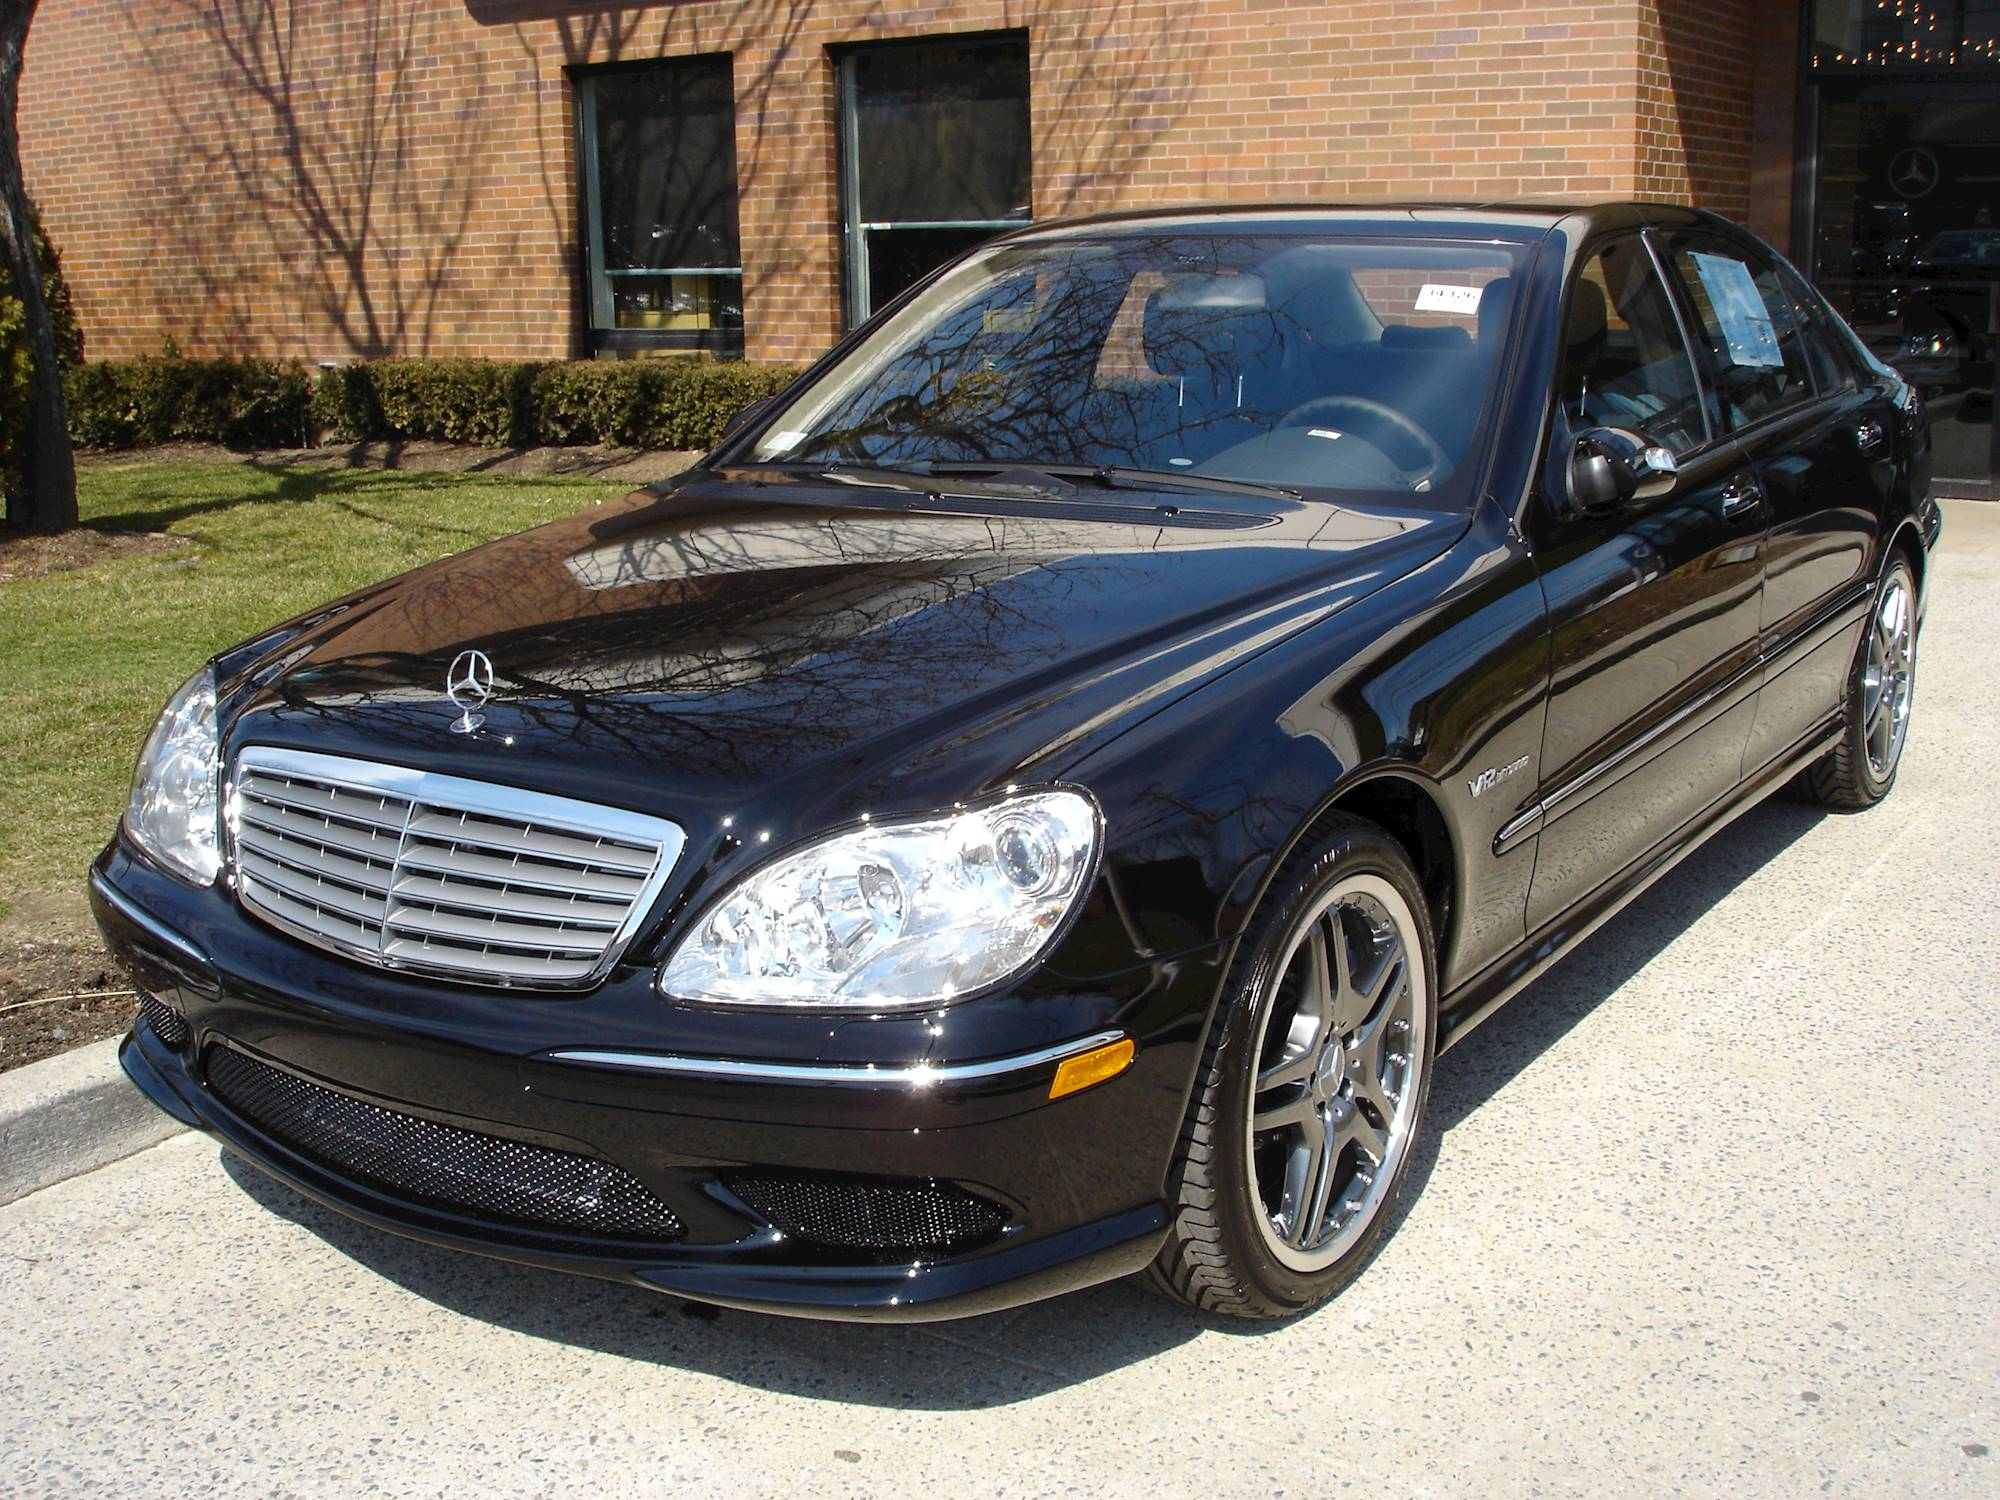 2006 Mercedes Benz S65 AMG Base 4dr Sedan 5 spd TouchShift w